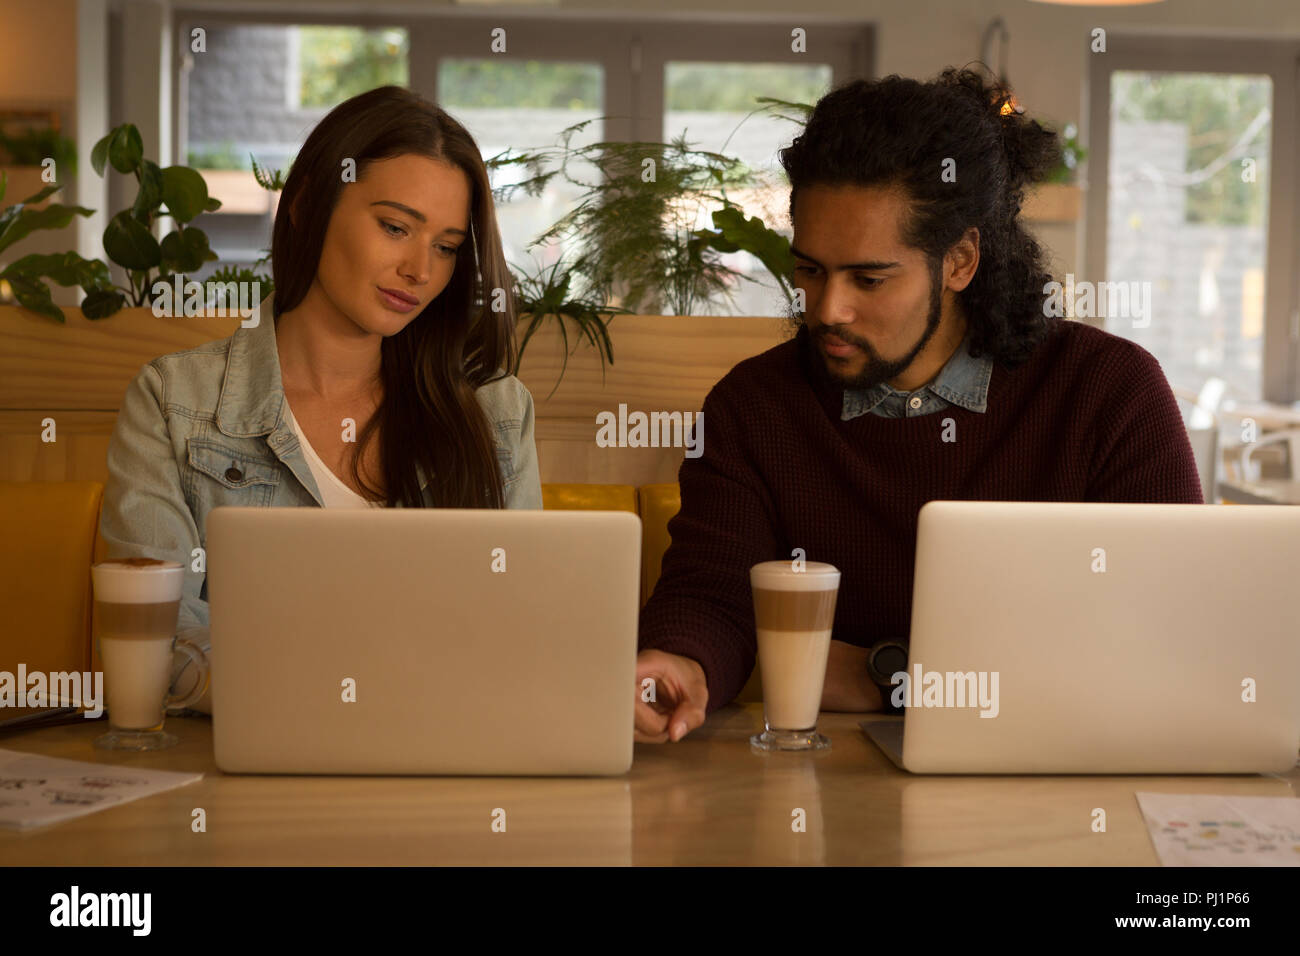 Couple discussing over laptop in cafe - Stock Image